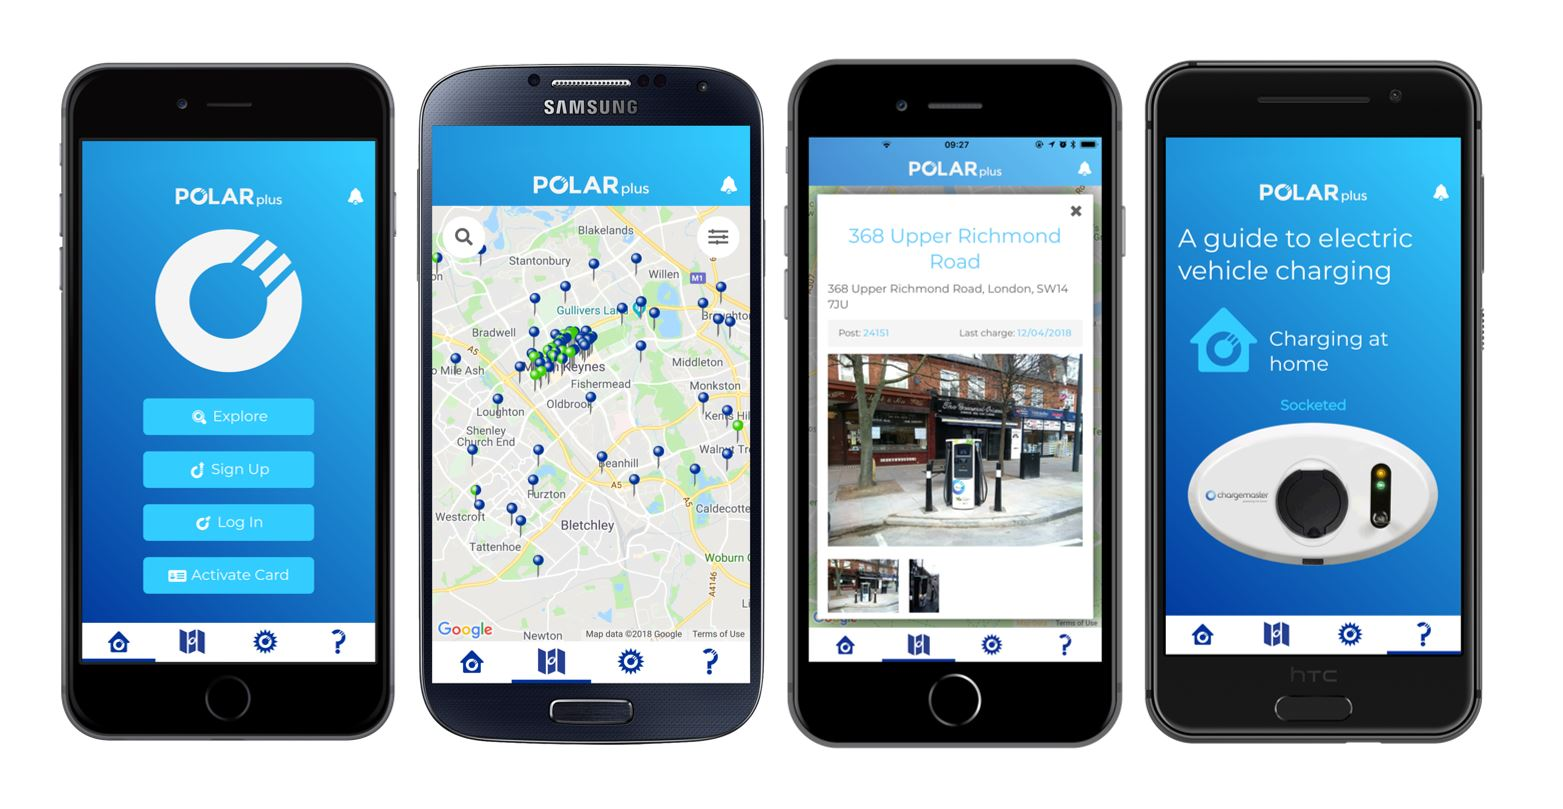 iPhone and Android mobile phone application - app images